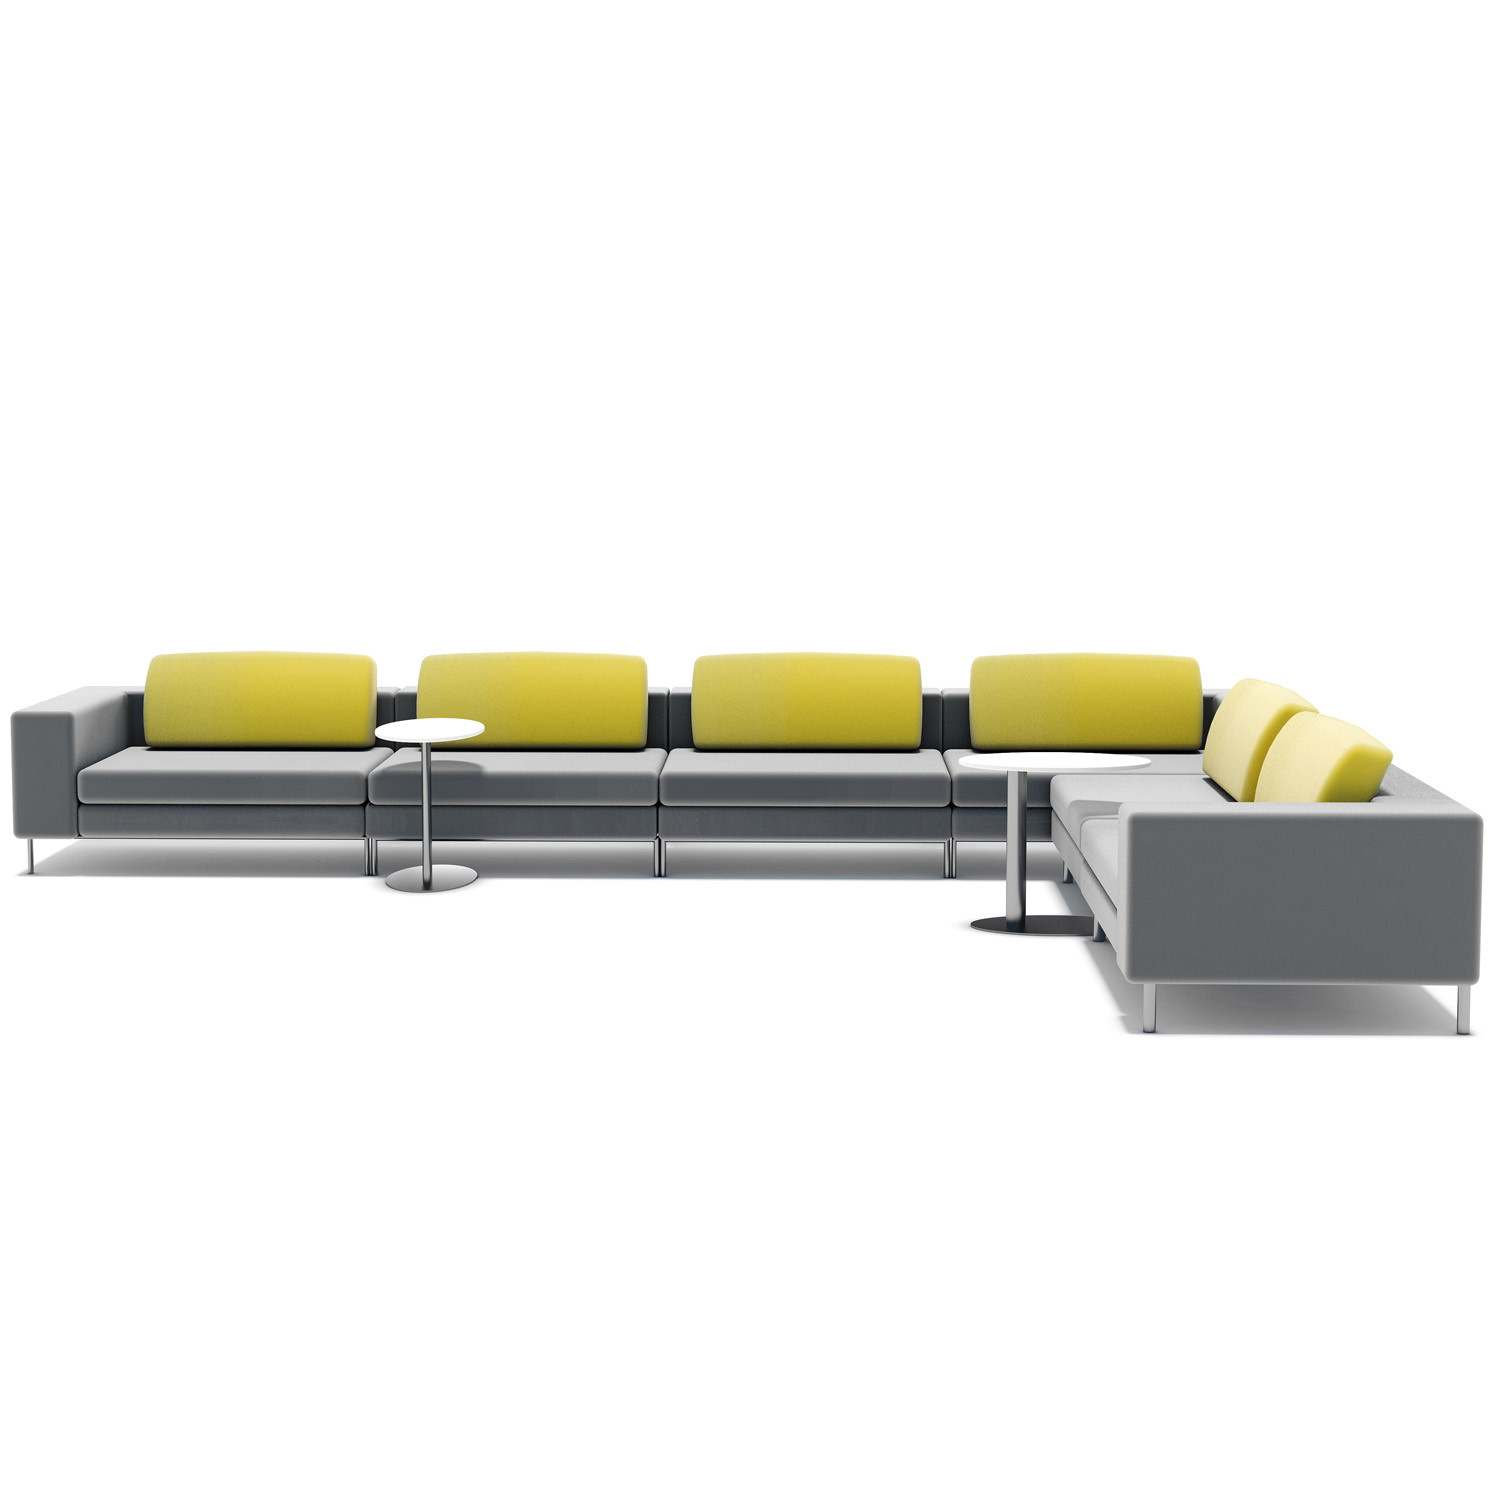 Zeus Sofa by David Fox Design